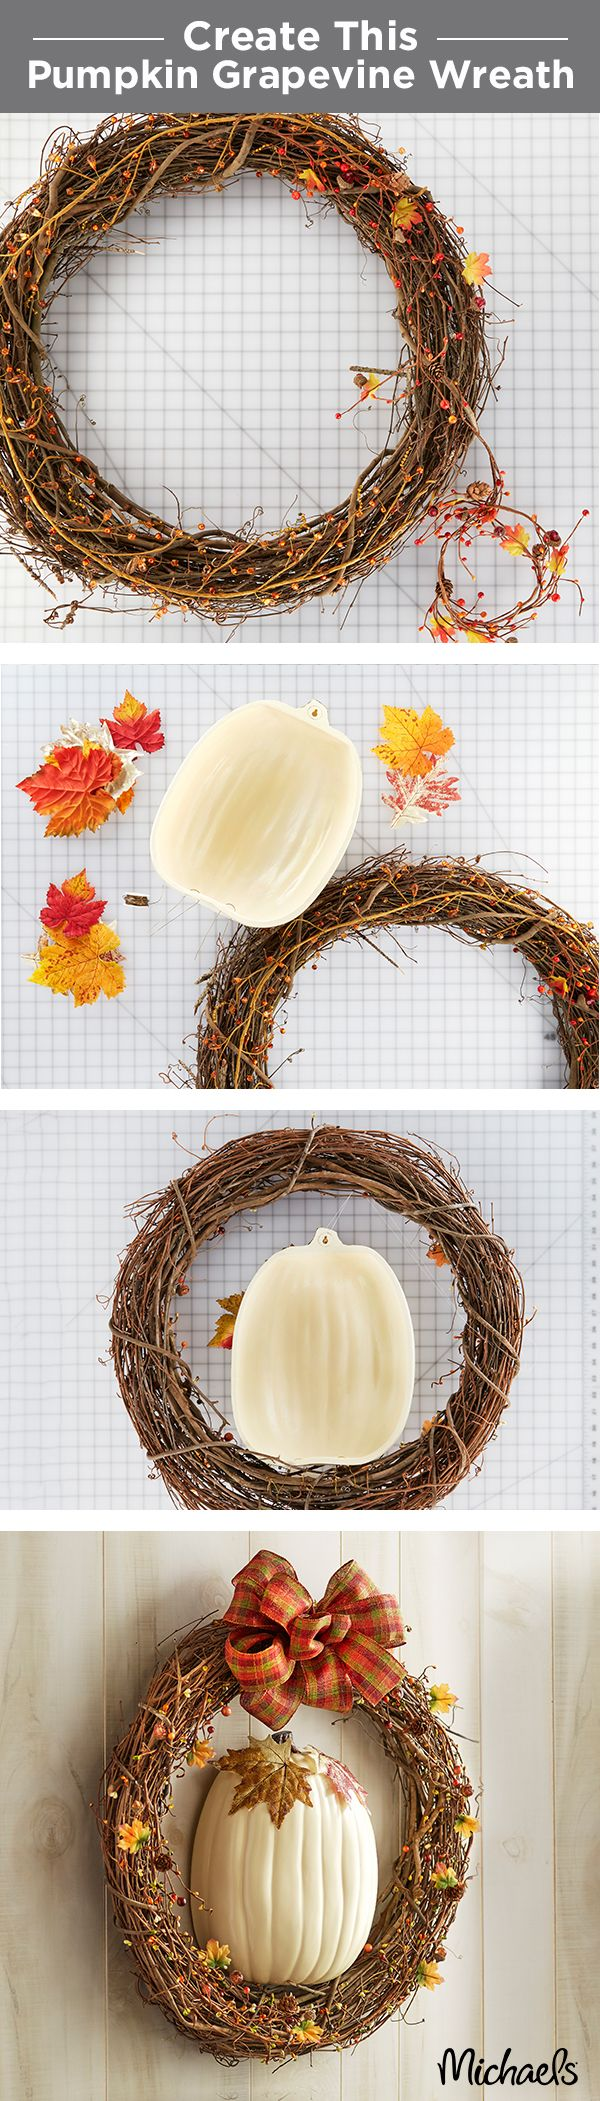 Greet your guests with this simple fall pumpkin wreath. Our craft pumpkins now come pre-cut in half, which makes this project one step simpler! First, add a garland to a grapevine wreath. Next add Fall leaves to the half pumpkin and secure it to your wreath. Finish with a handmade bow. Find everything you need for this rustic Fall wreath at Michaels!